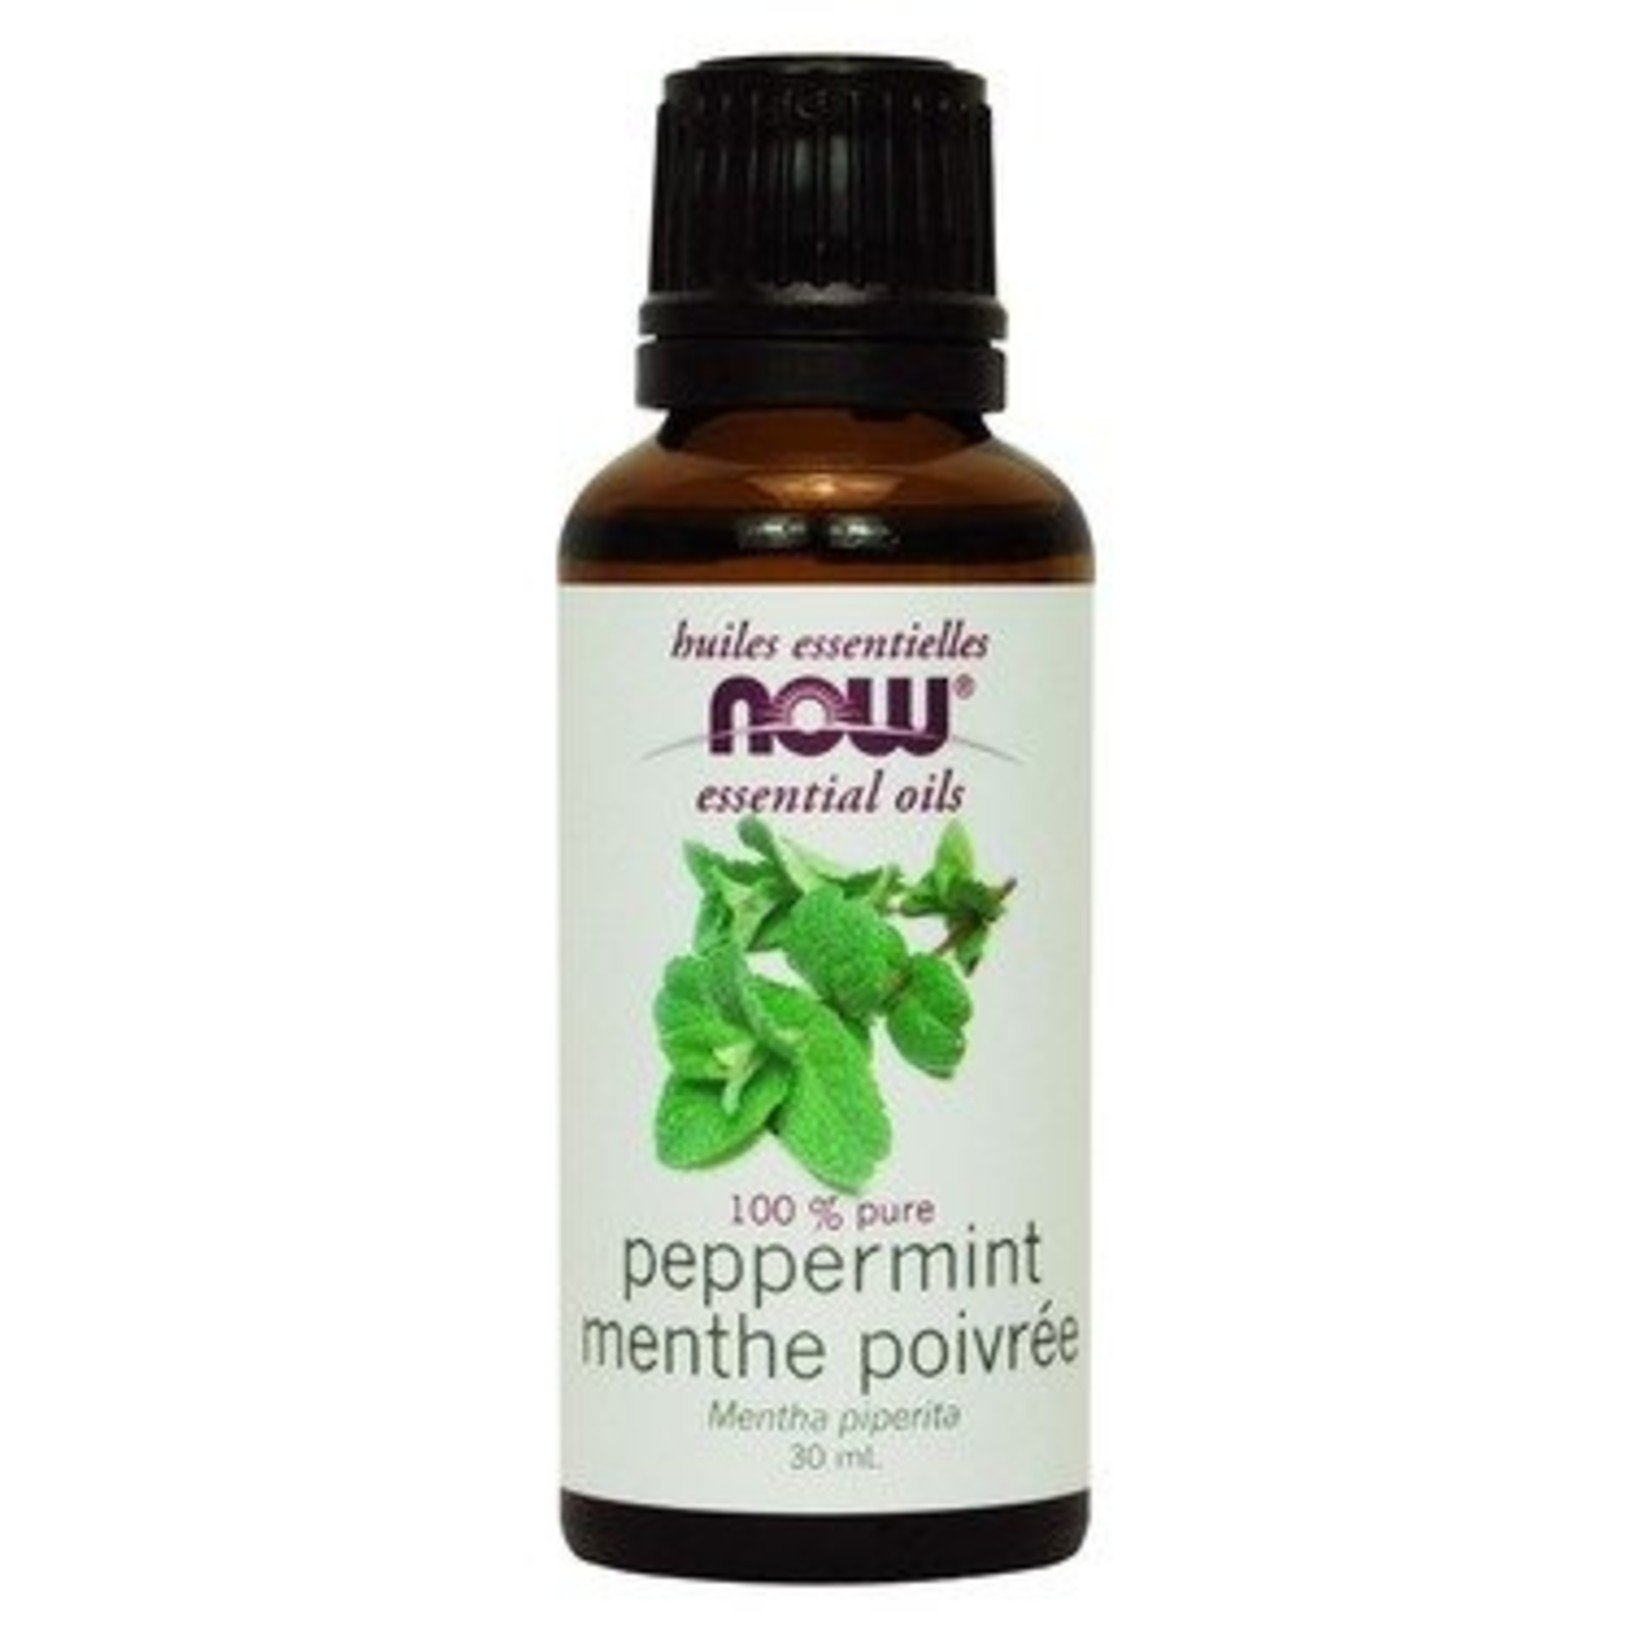 NOW NOW Peppermint Oil 30mL